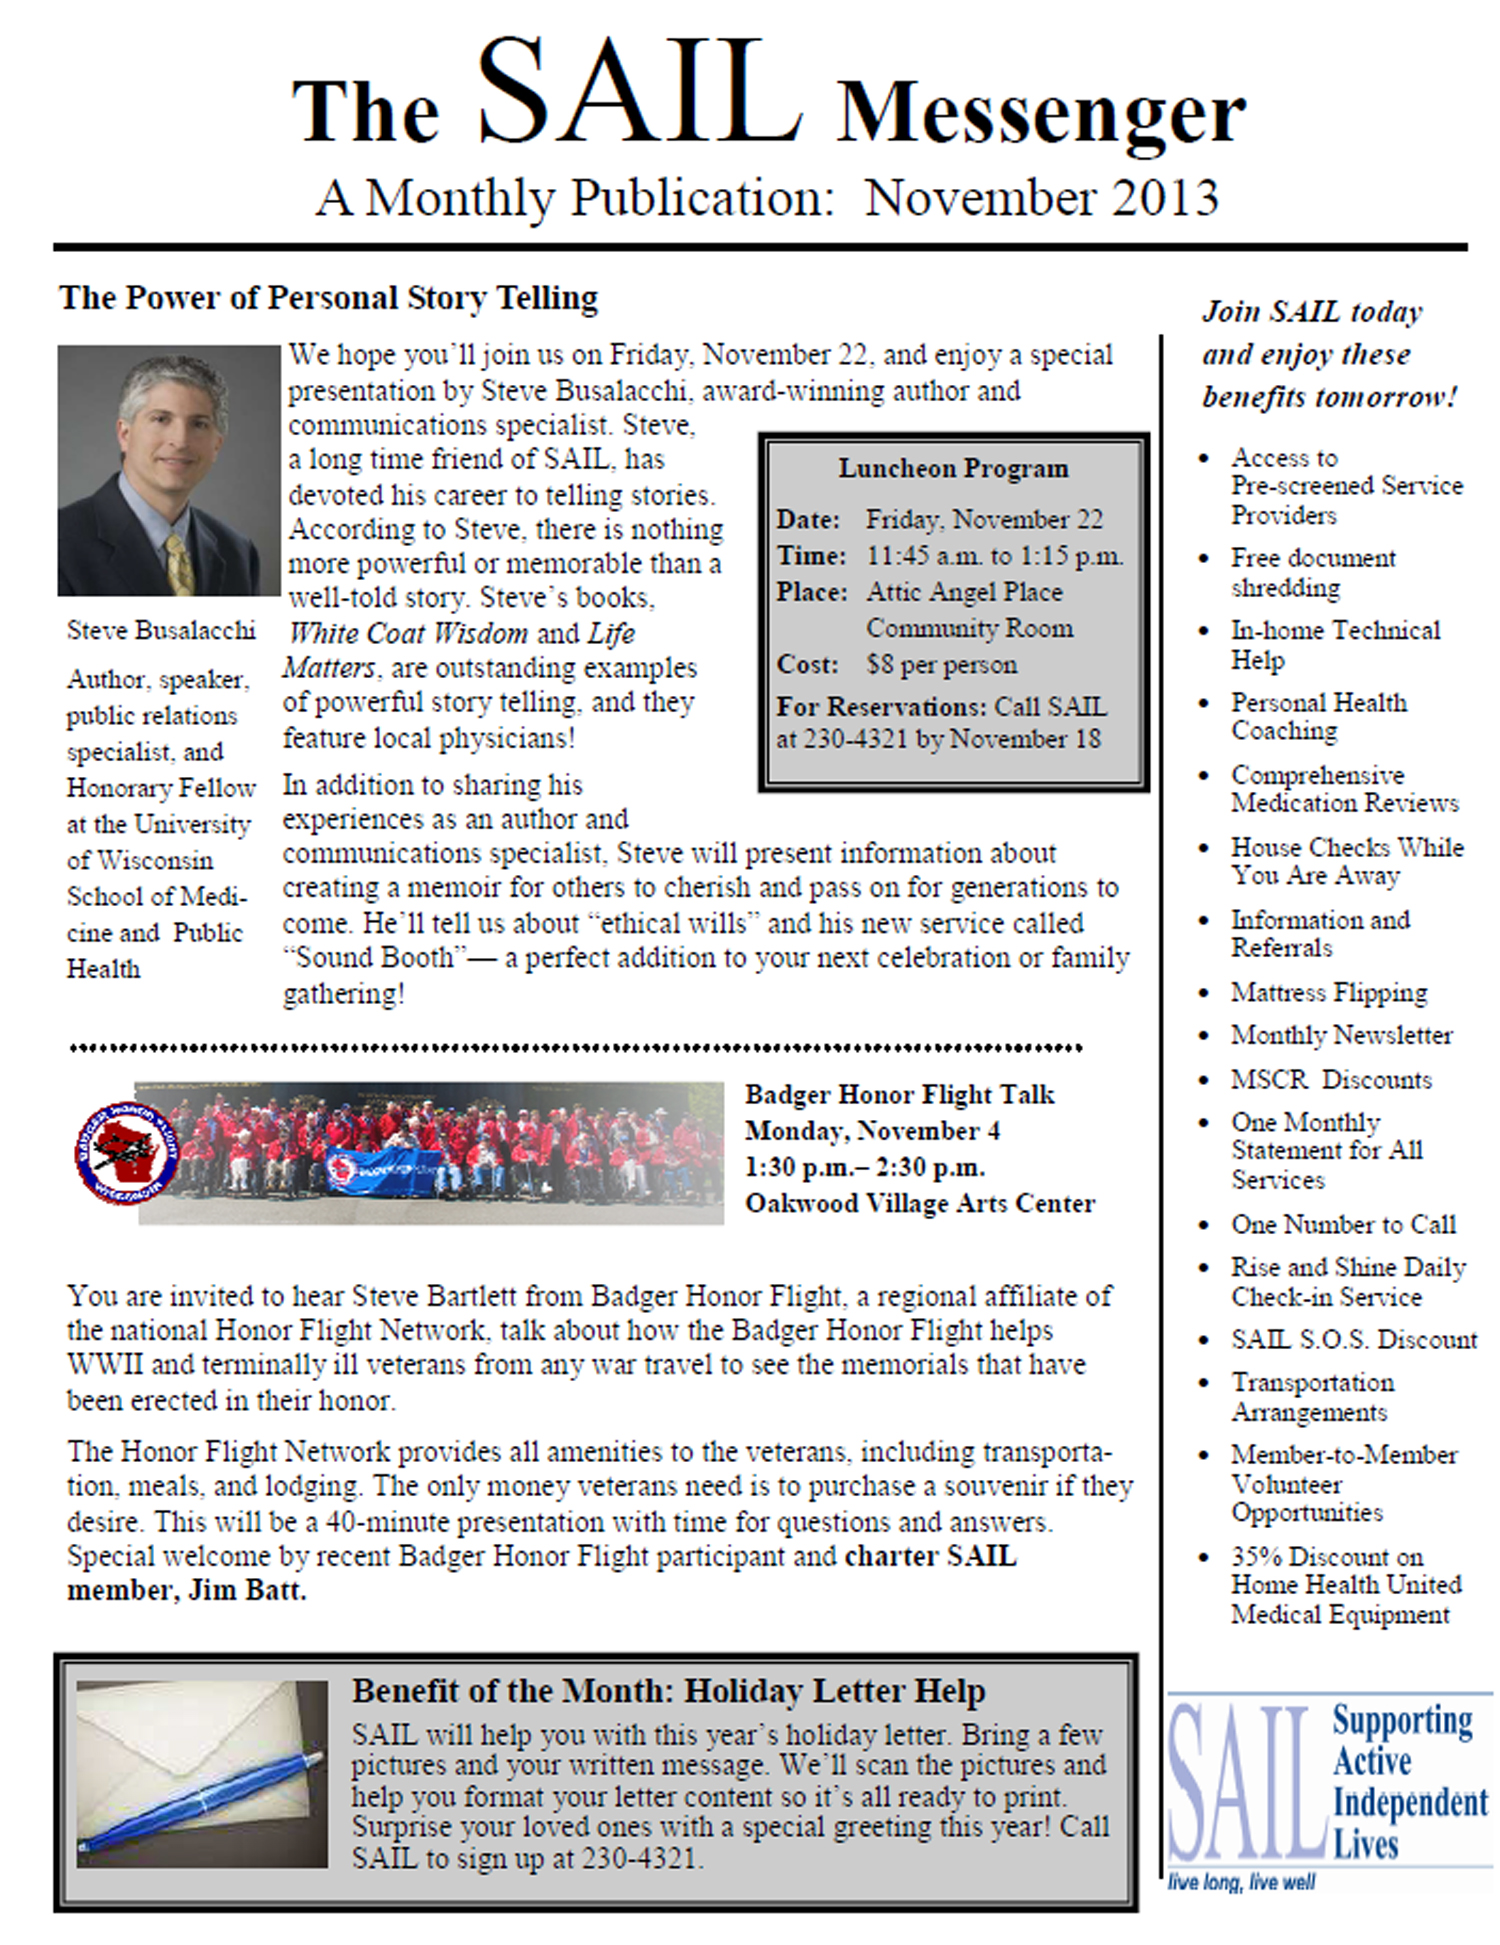 SAILnewsletterNov2013.jpg